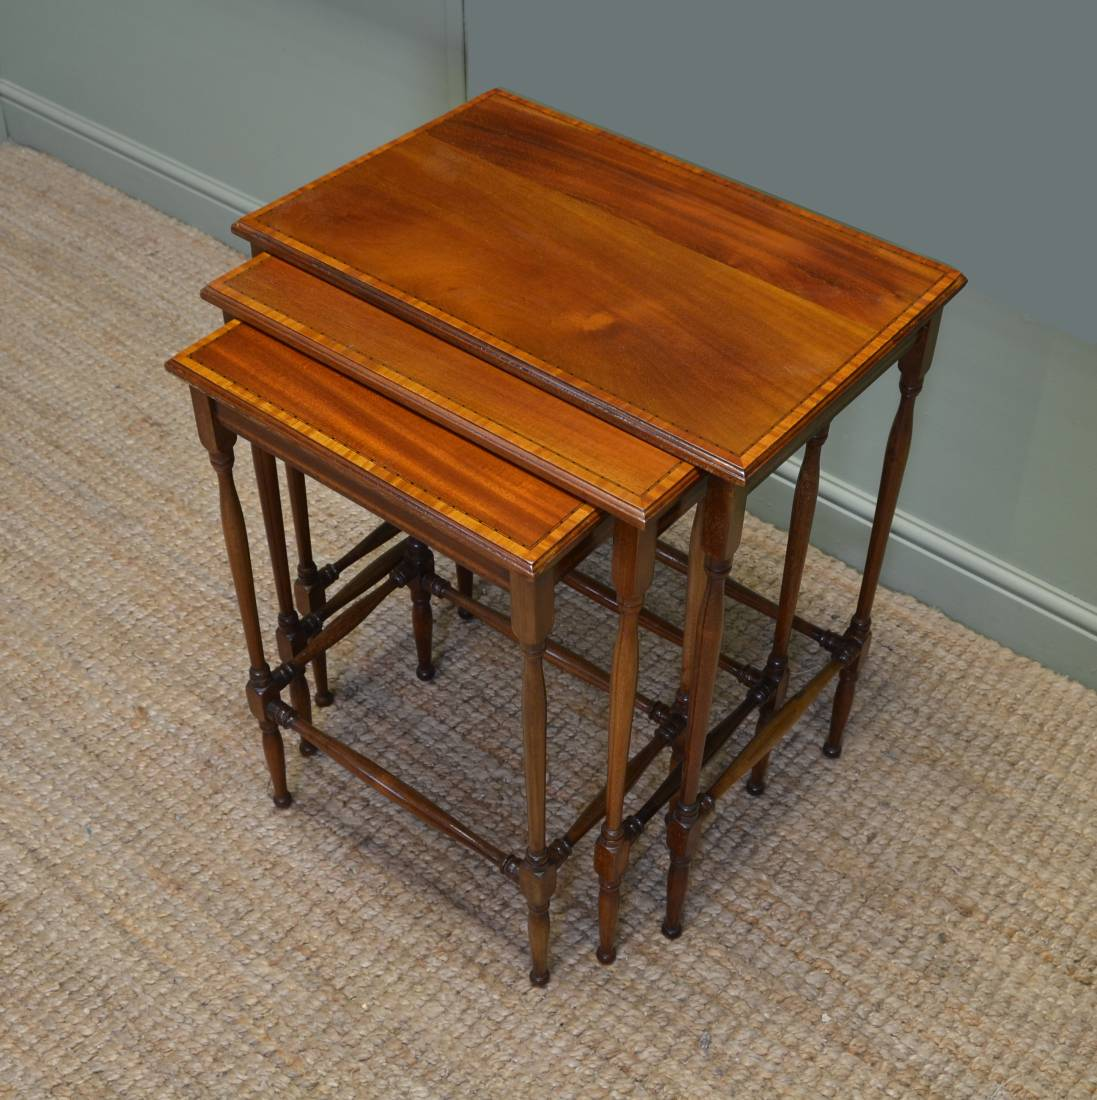 Fine Quality Edwardian nest of 3 Inlaid Antique Tables